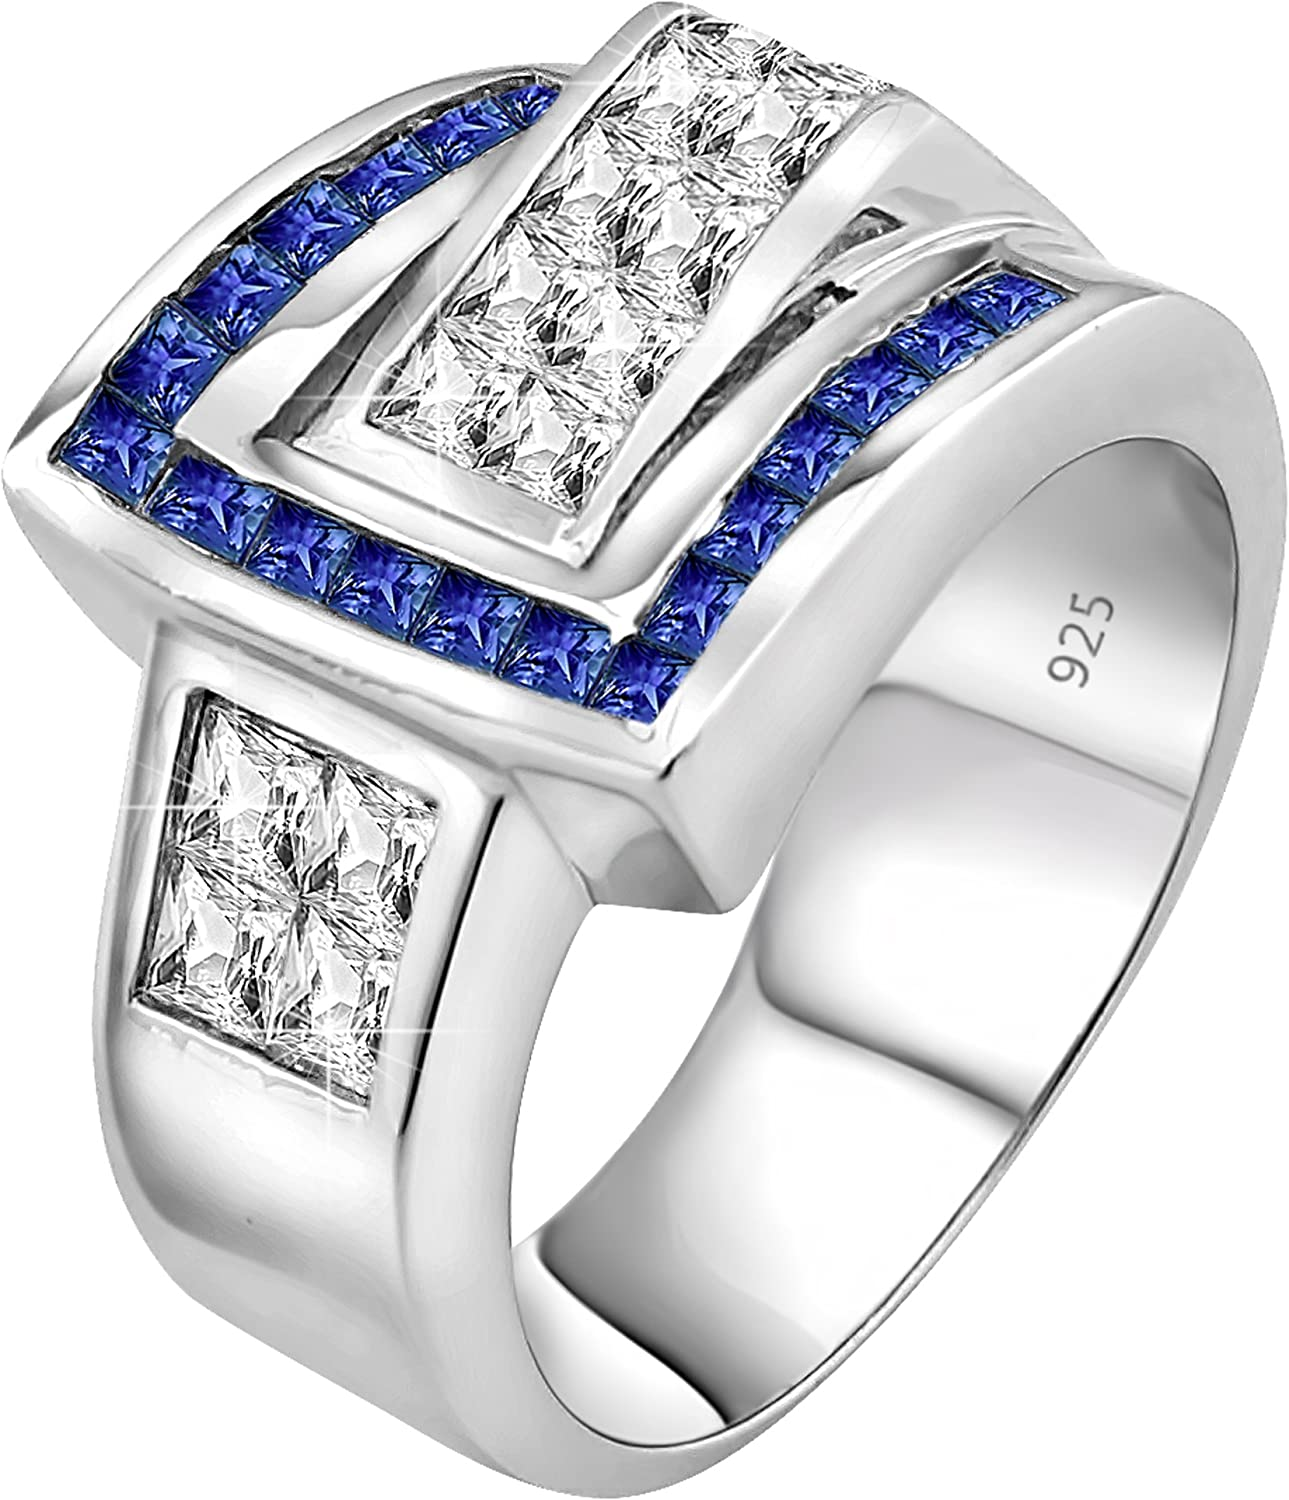 Mens Sterling Silver .925 Ring Featuring Invisible and Channel Set Blue and White Cubic Zirconia Stones Platinum Plated Jewelry